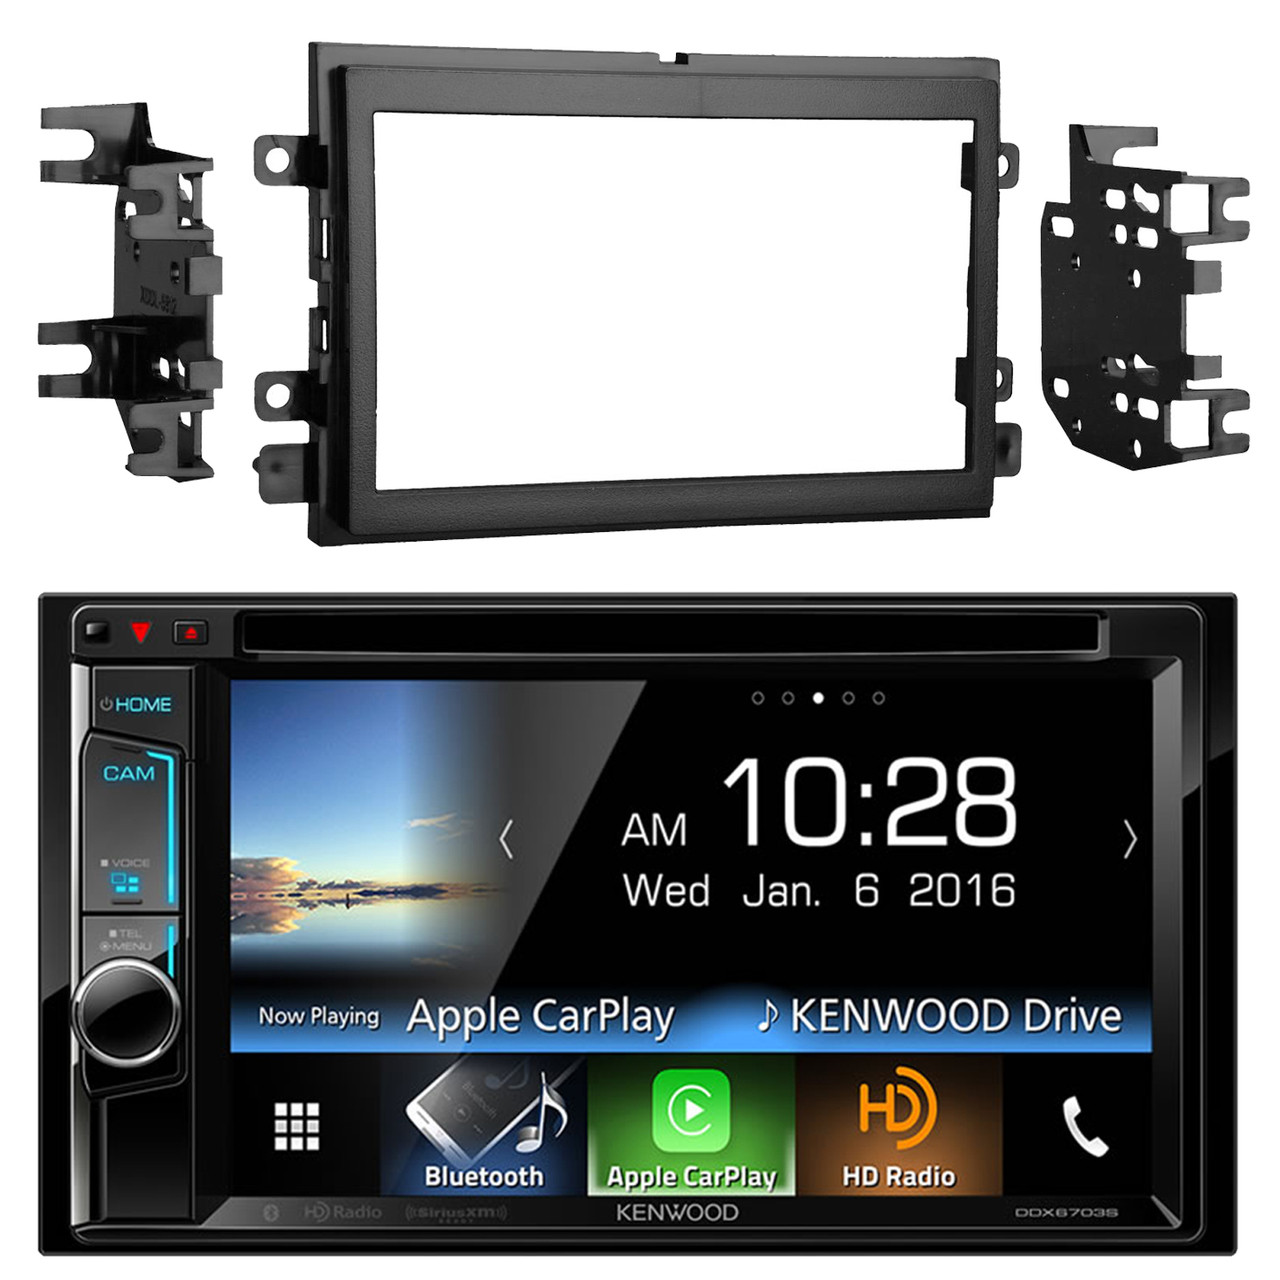 Kenwood Ddx6703s 6 2 Inch Touchscreen Double Din Cd Dvd Player Car